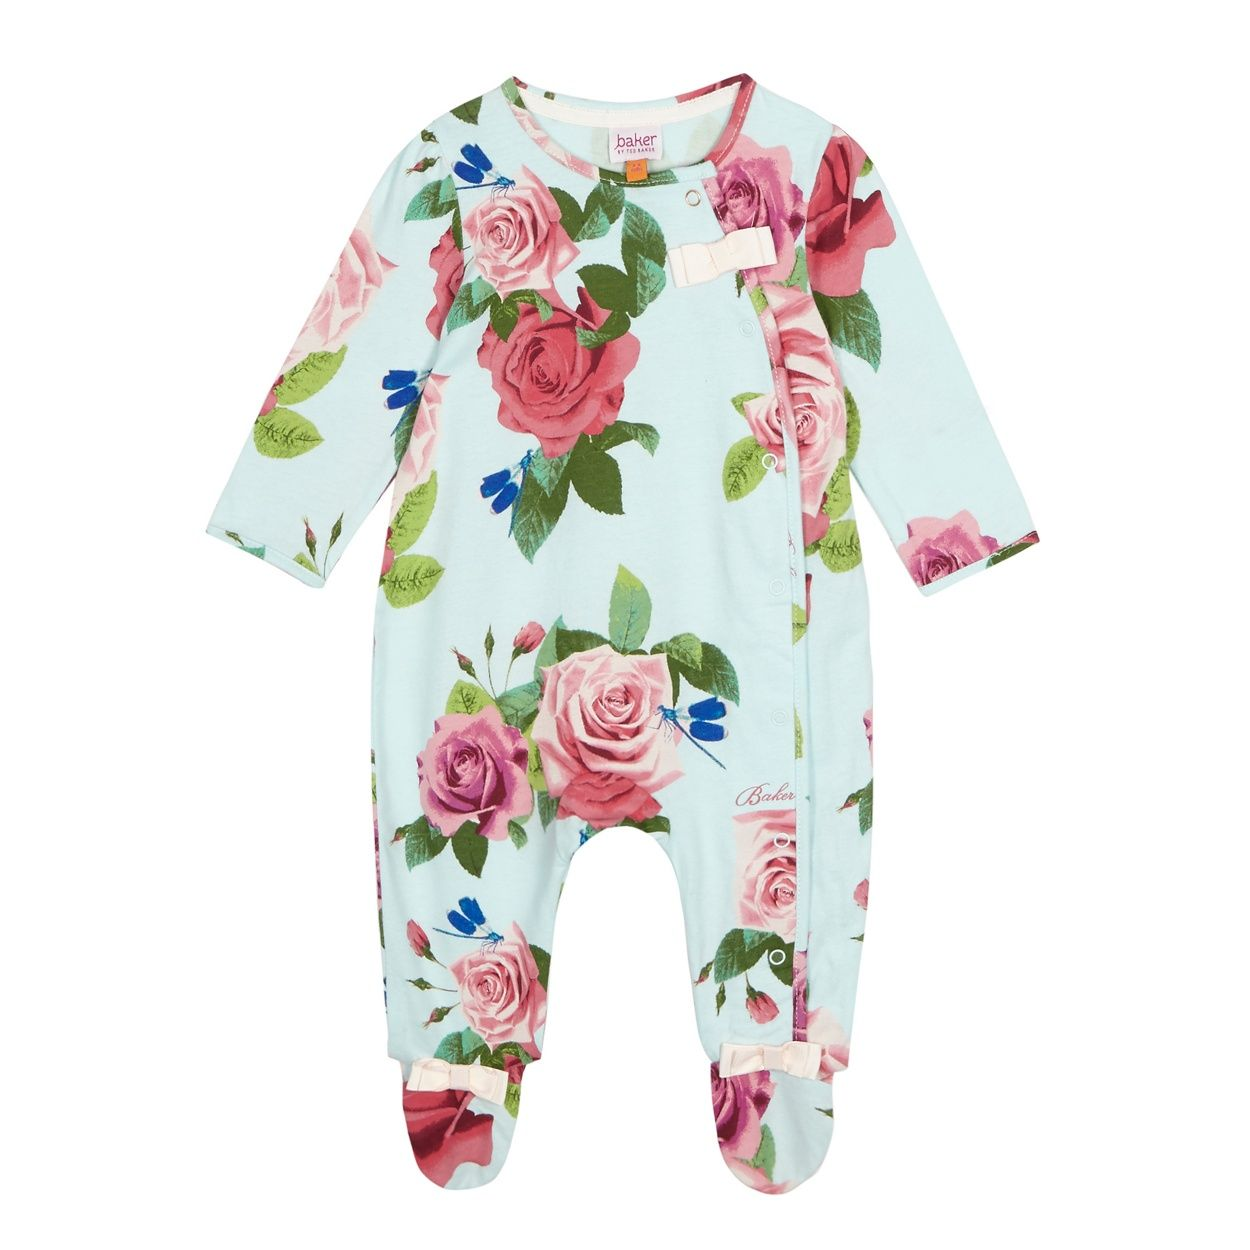 42a1cef46 From Ted Baker s fantastic range of babies clothing